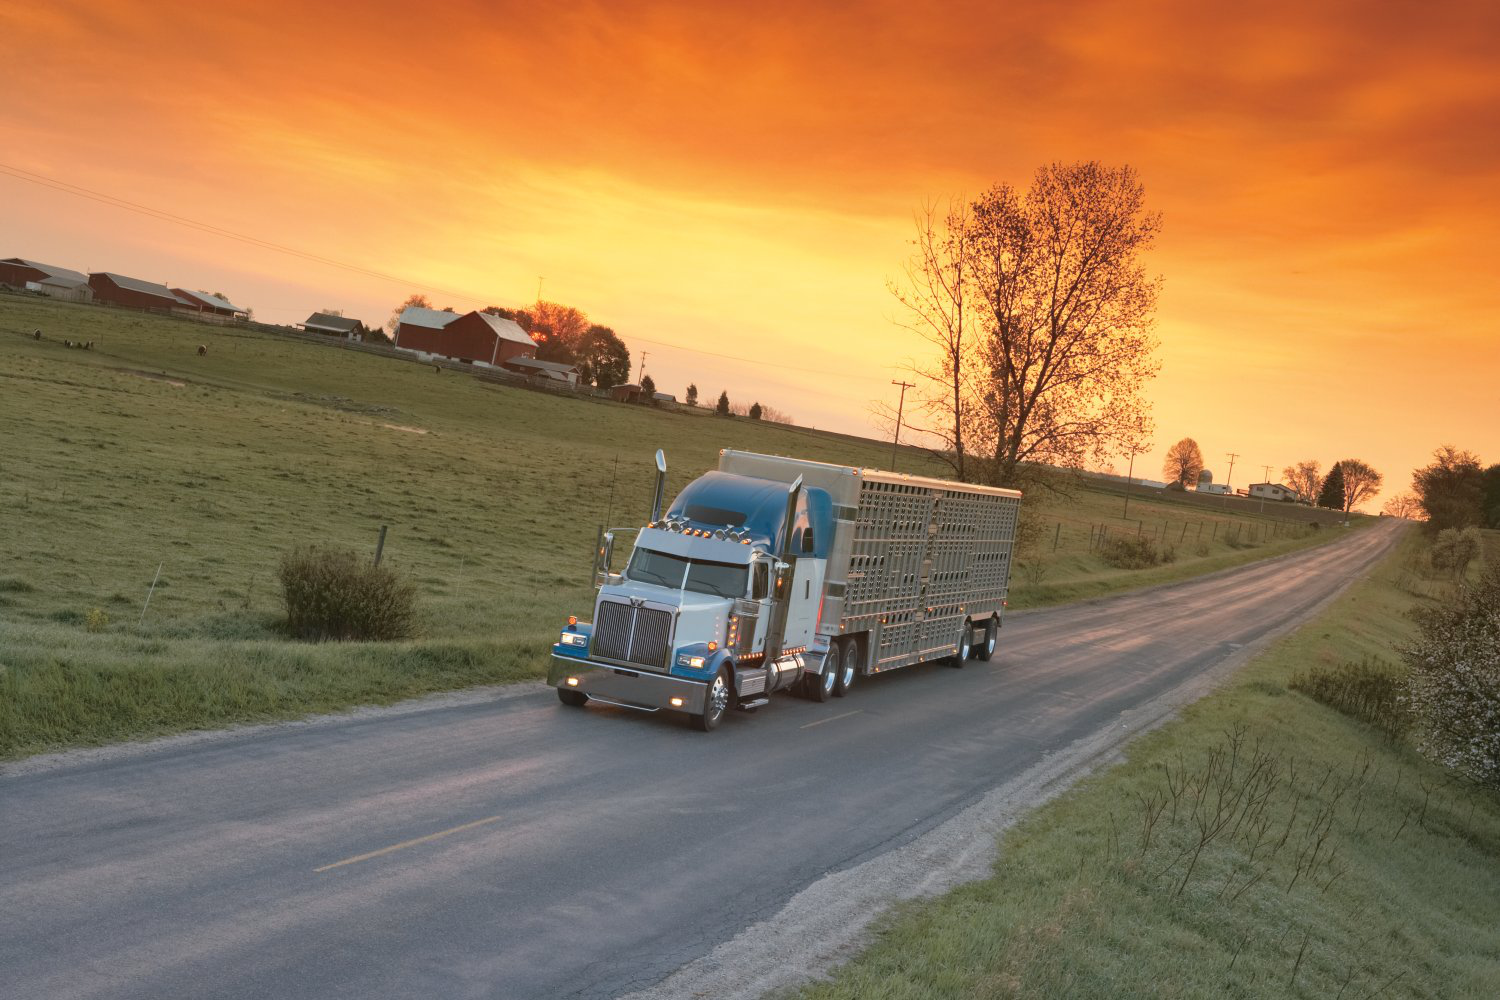 Brake issue prompts recall of about 450 Western Star 4900 trucks